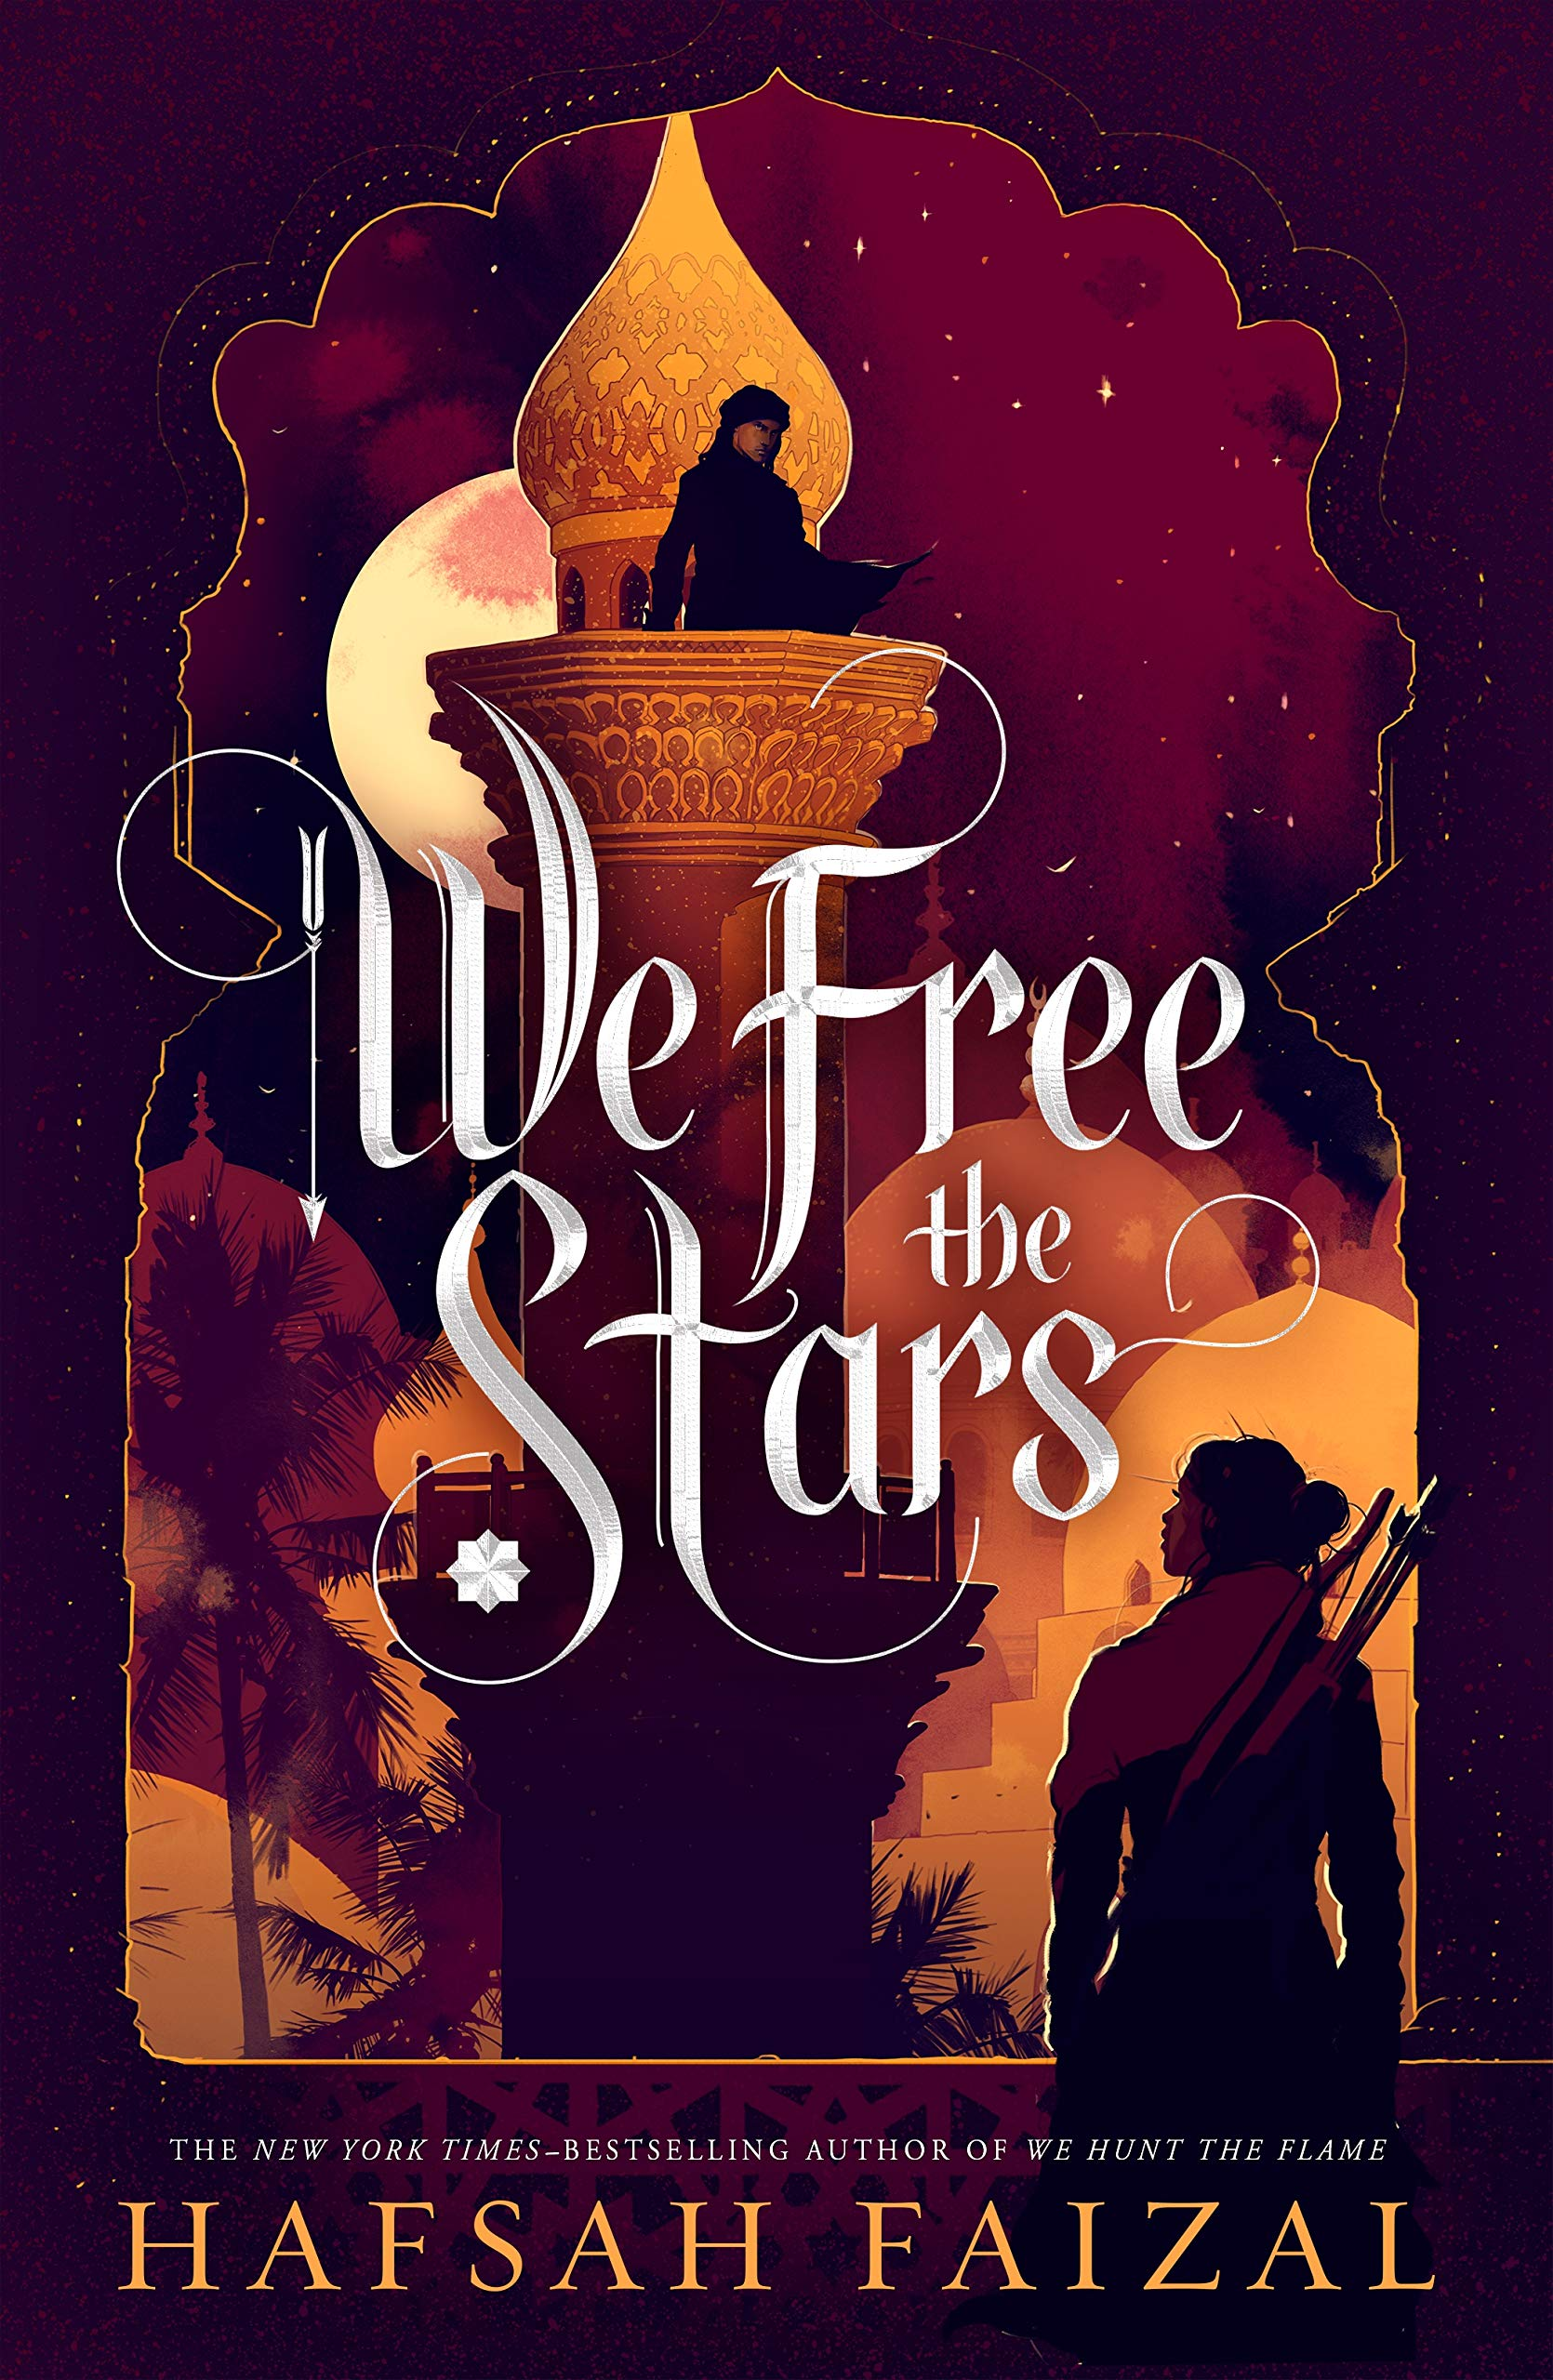 Image result for we free the stars by hafsah faizal